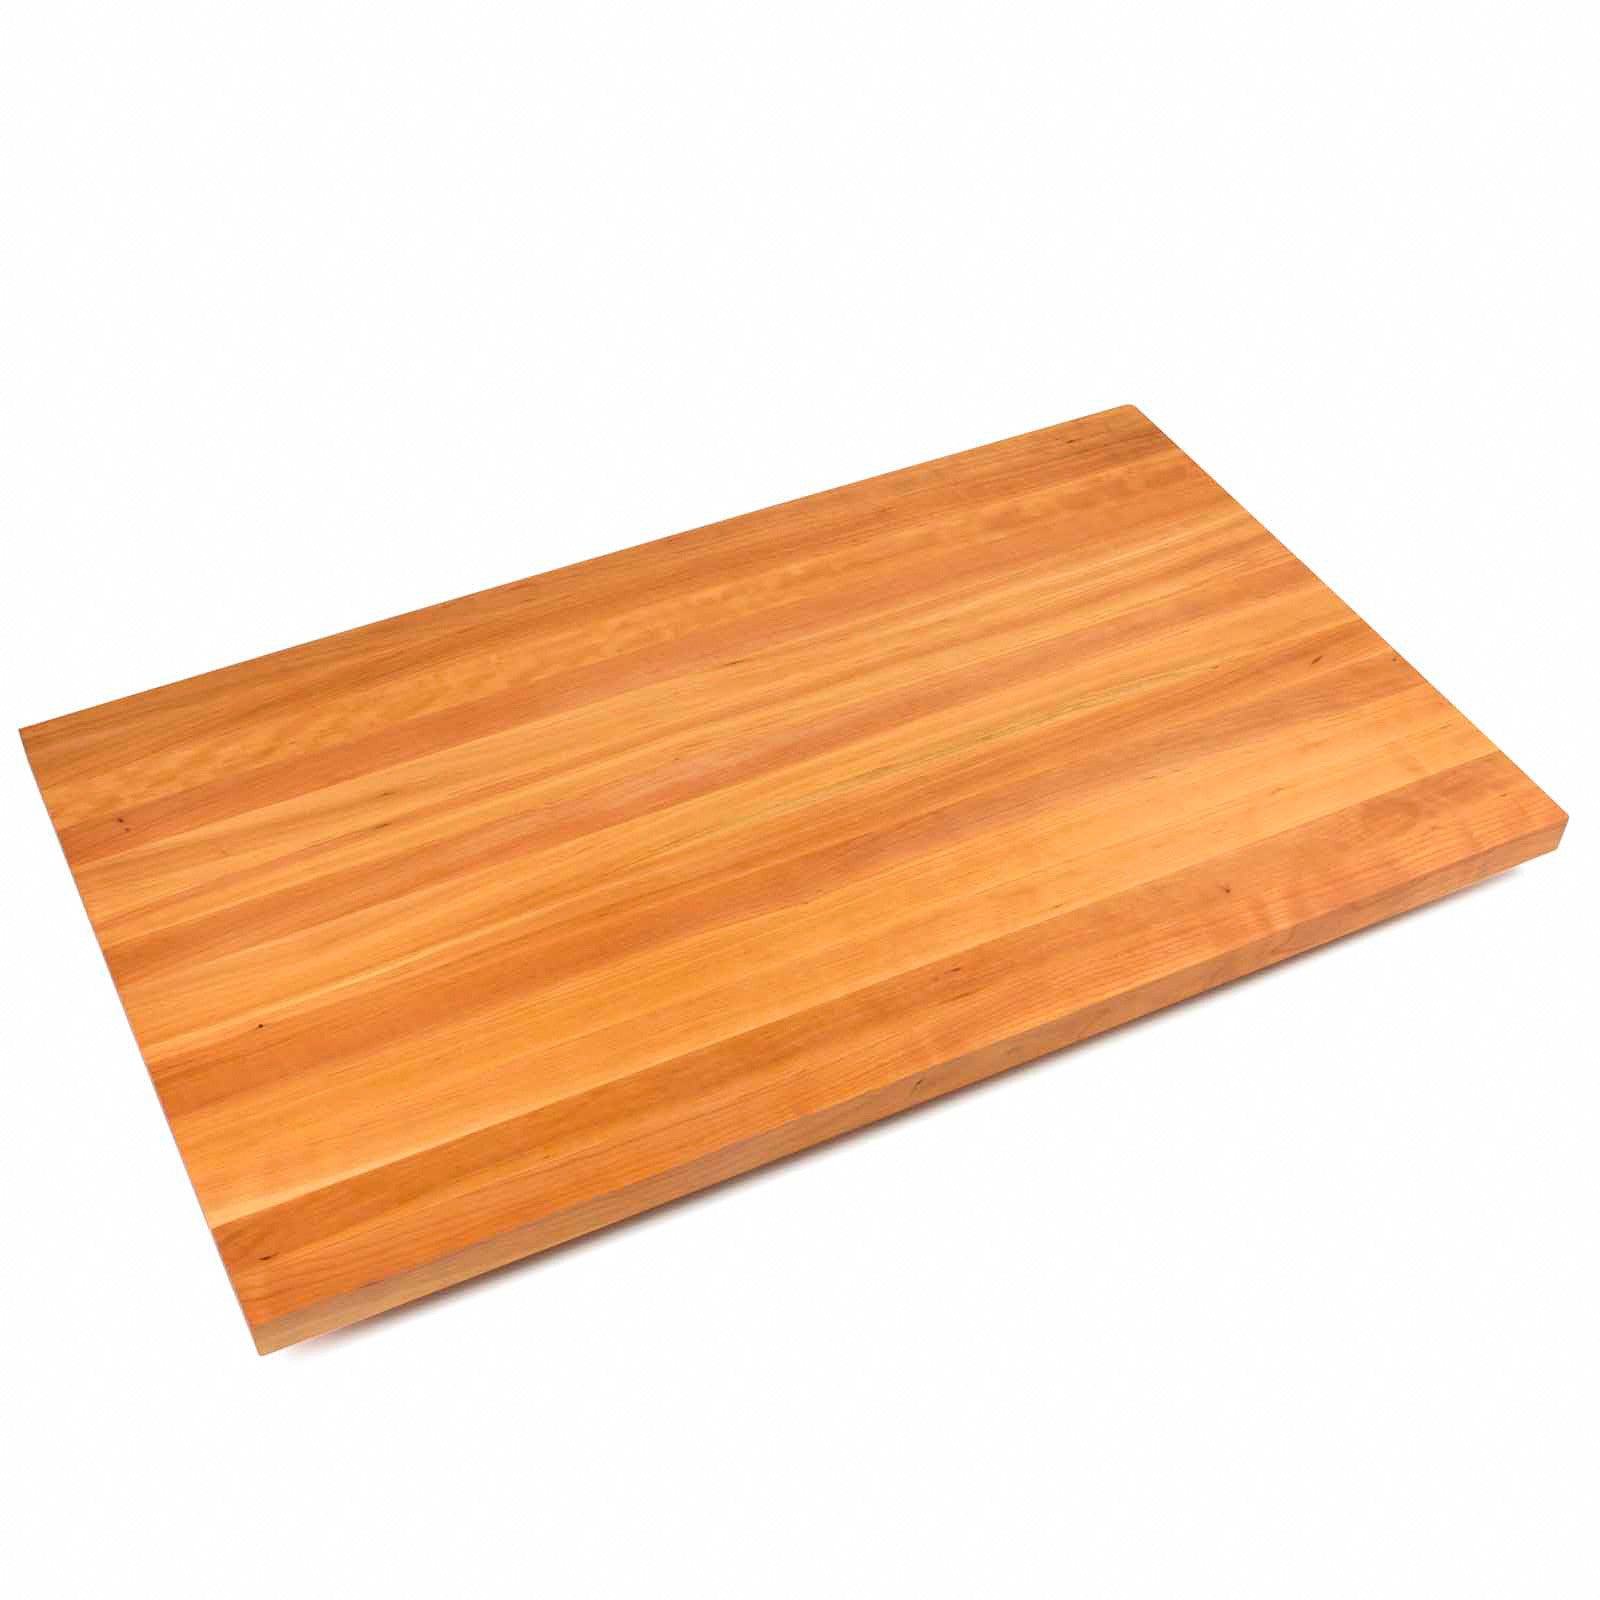 "John Boos 1 1/2"" Thick Edge Grain Cherry Butcher Block Countertop - 27"" Wide"